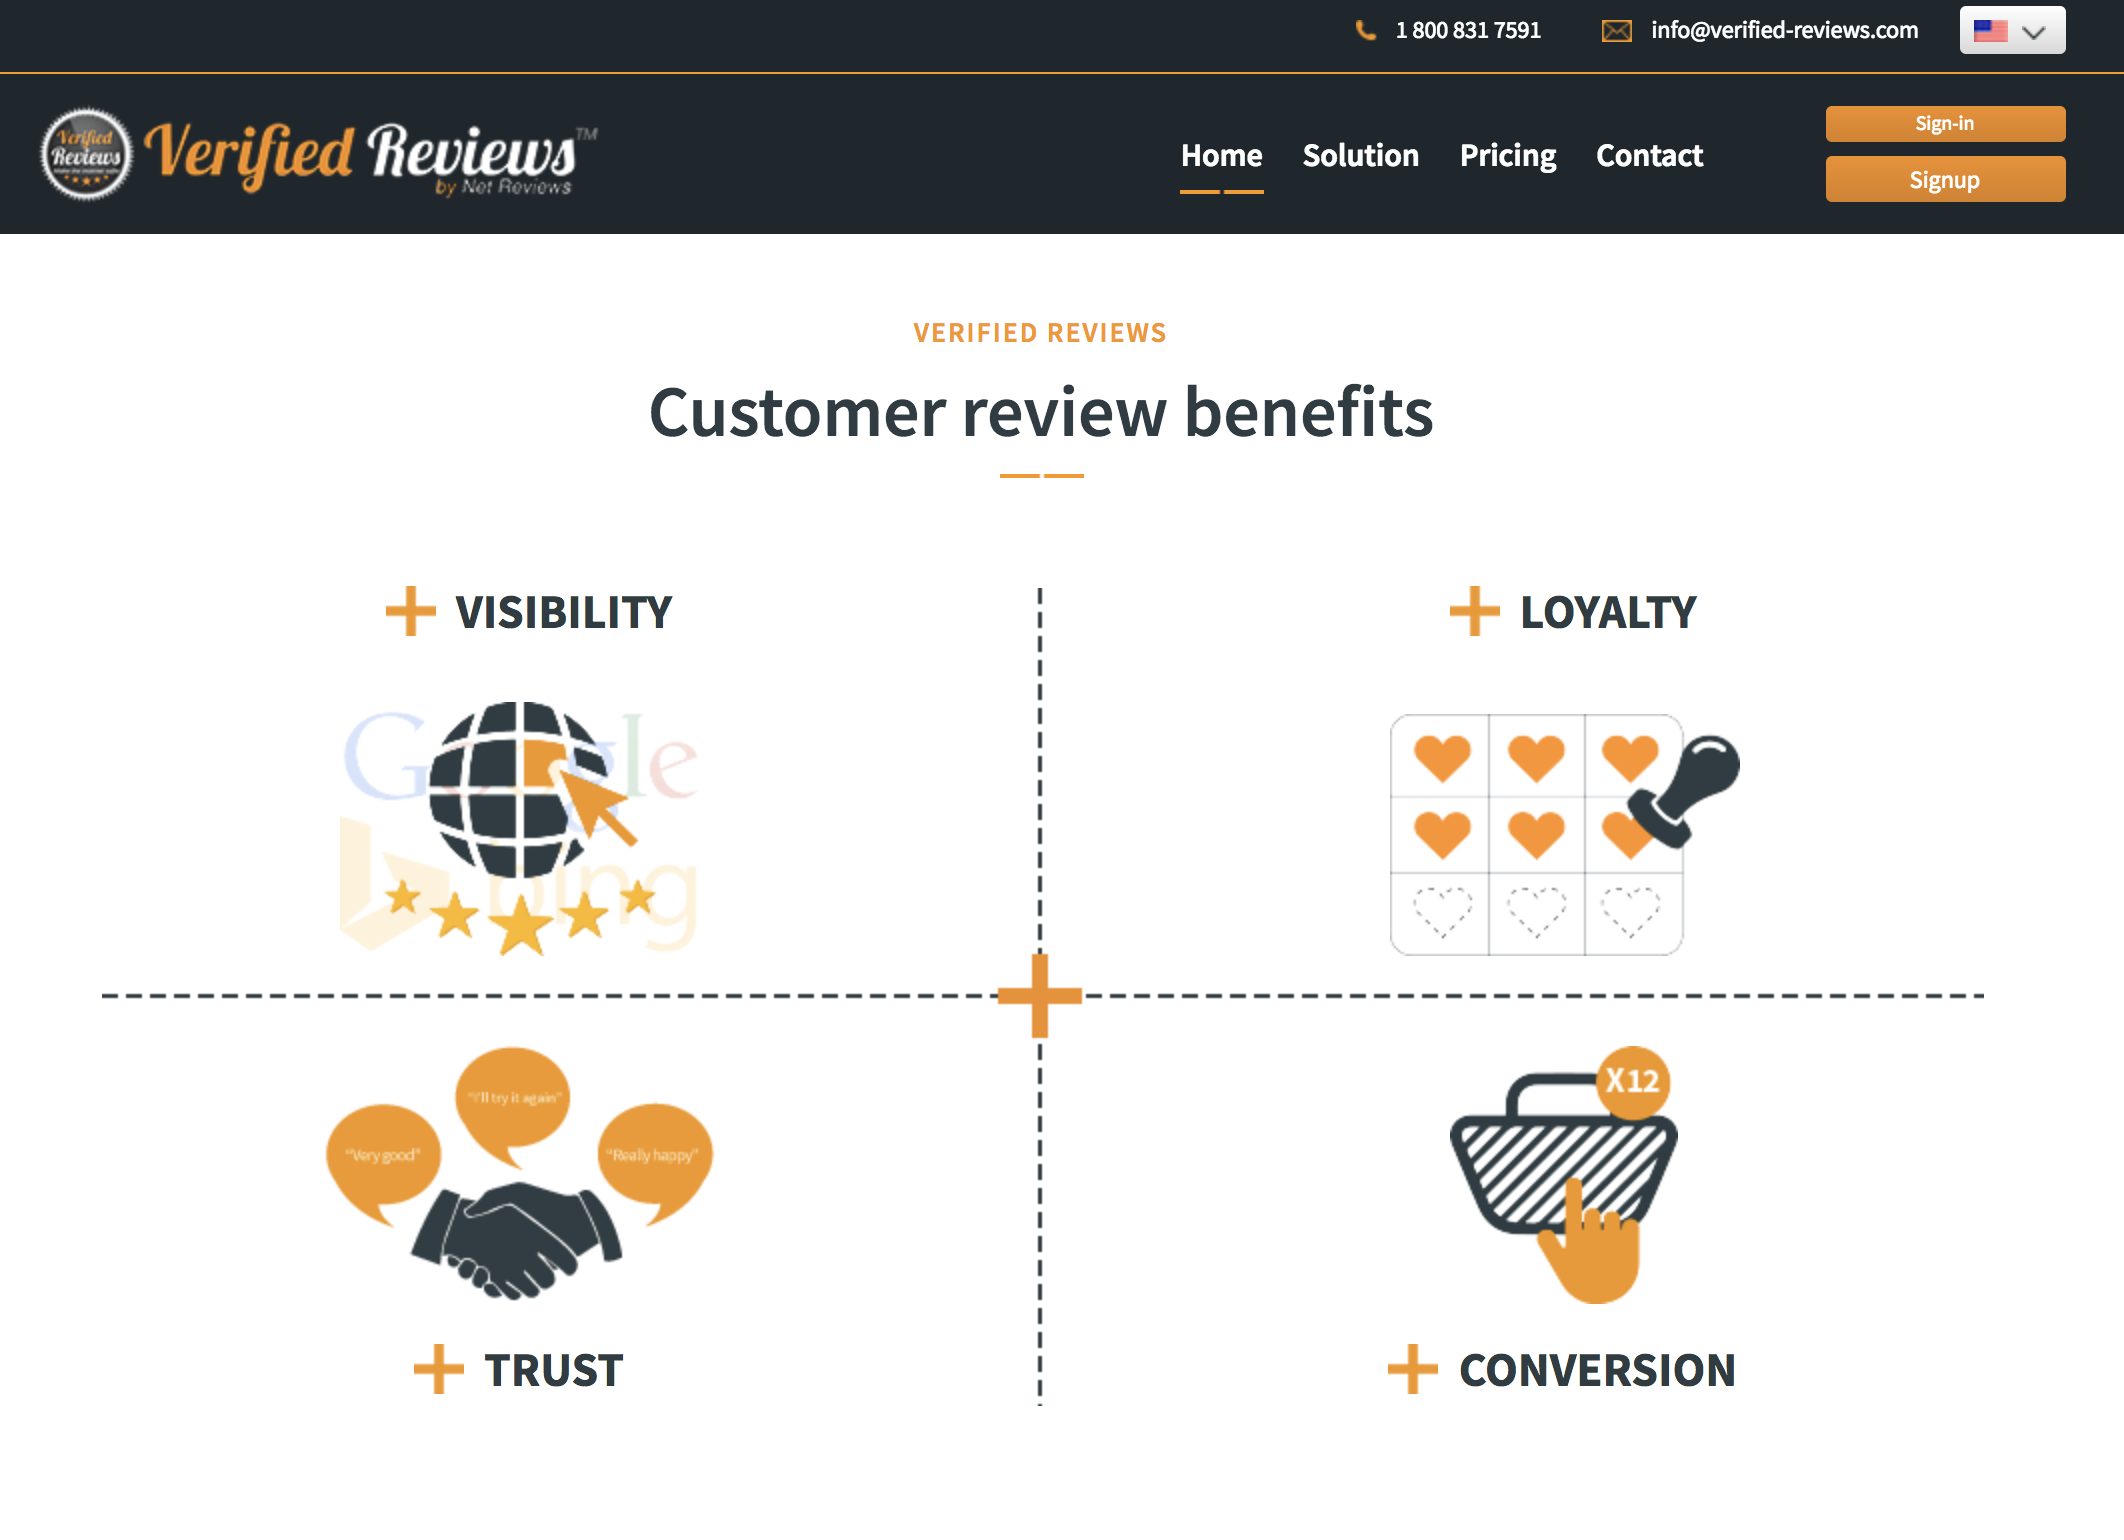 Verified Reviews home page